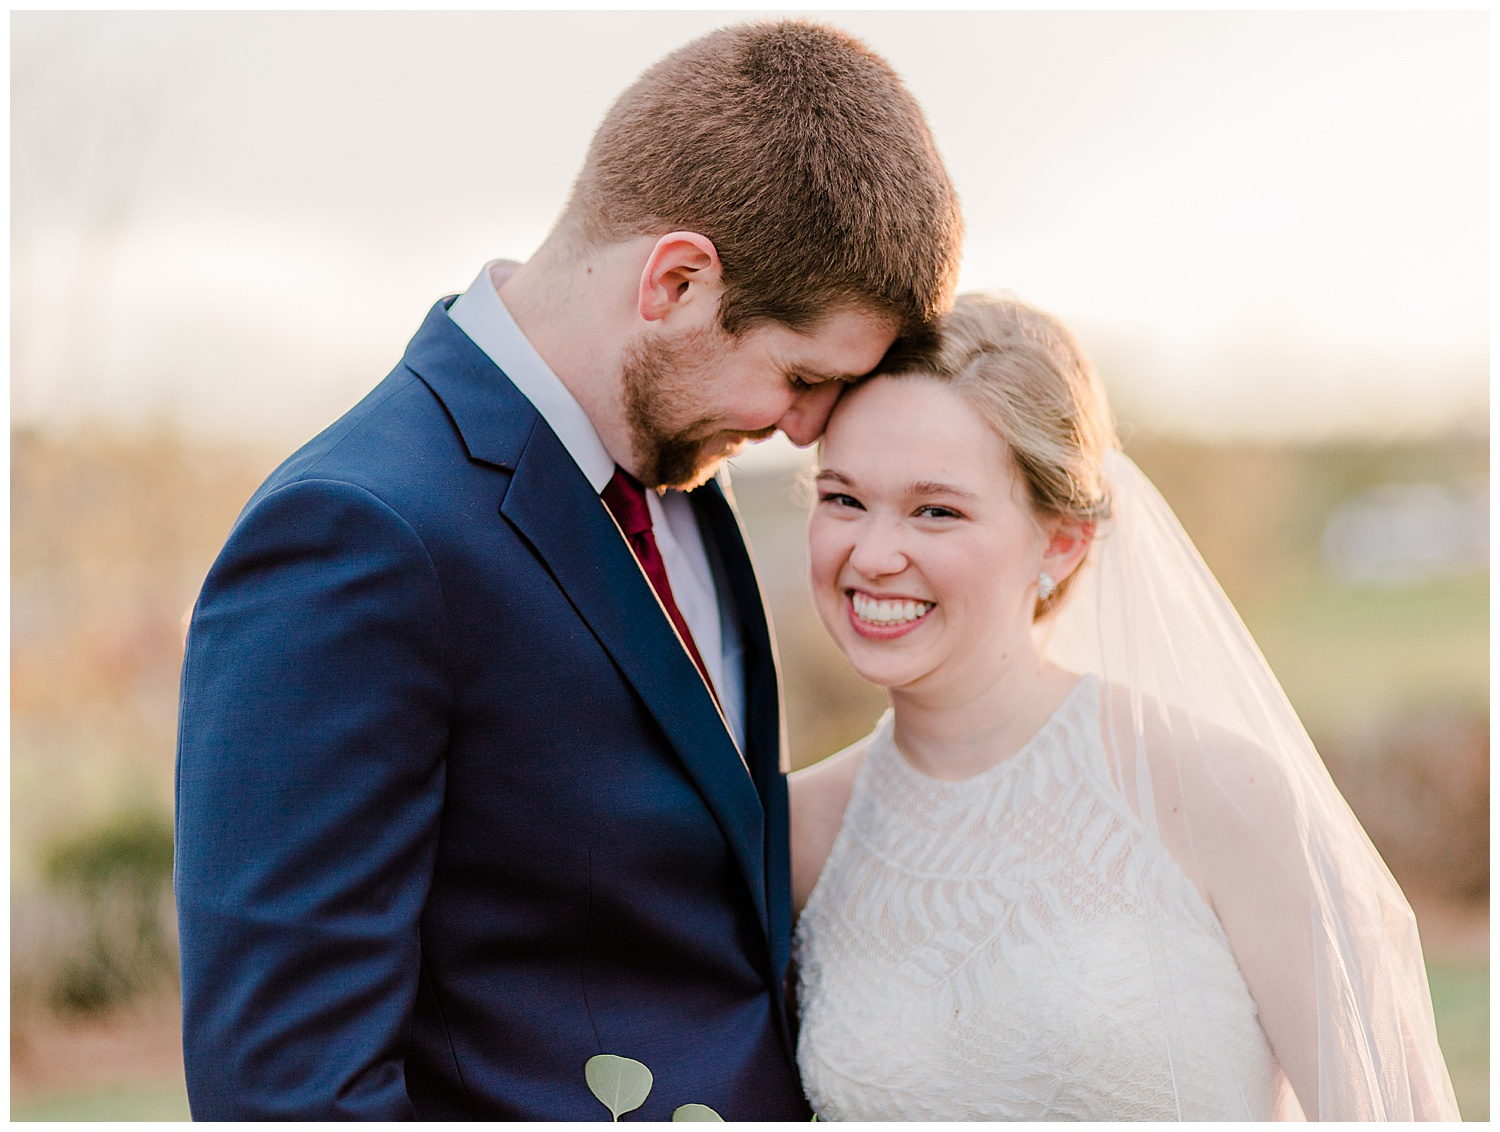 https://www.marshallarts.photography/stacie-marshall-blog/2019/3/24/early-mountain-vineyards-wedding-in-spring-christy-tyler